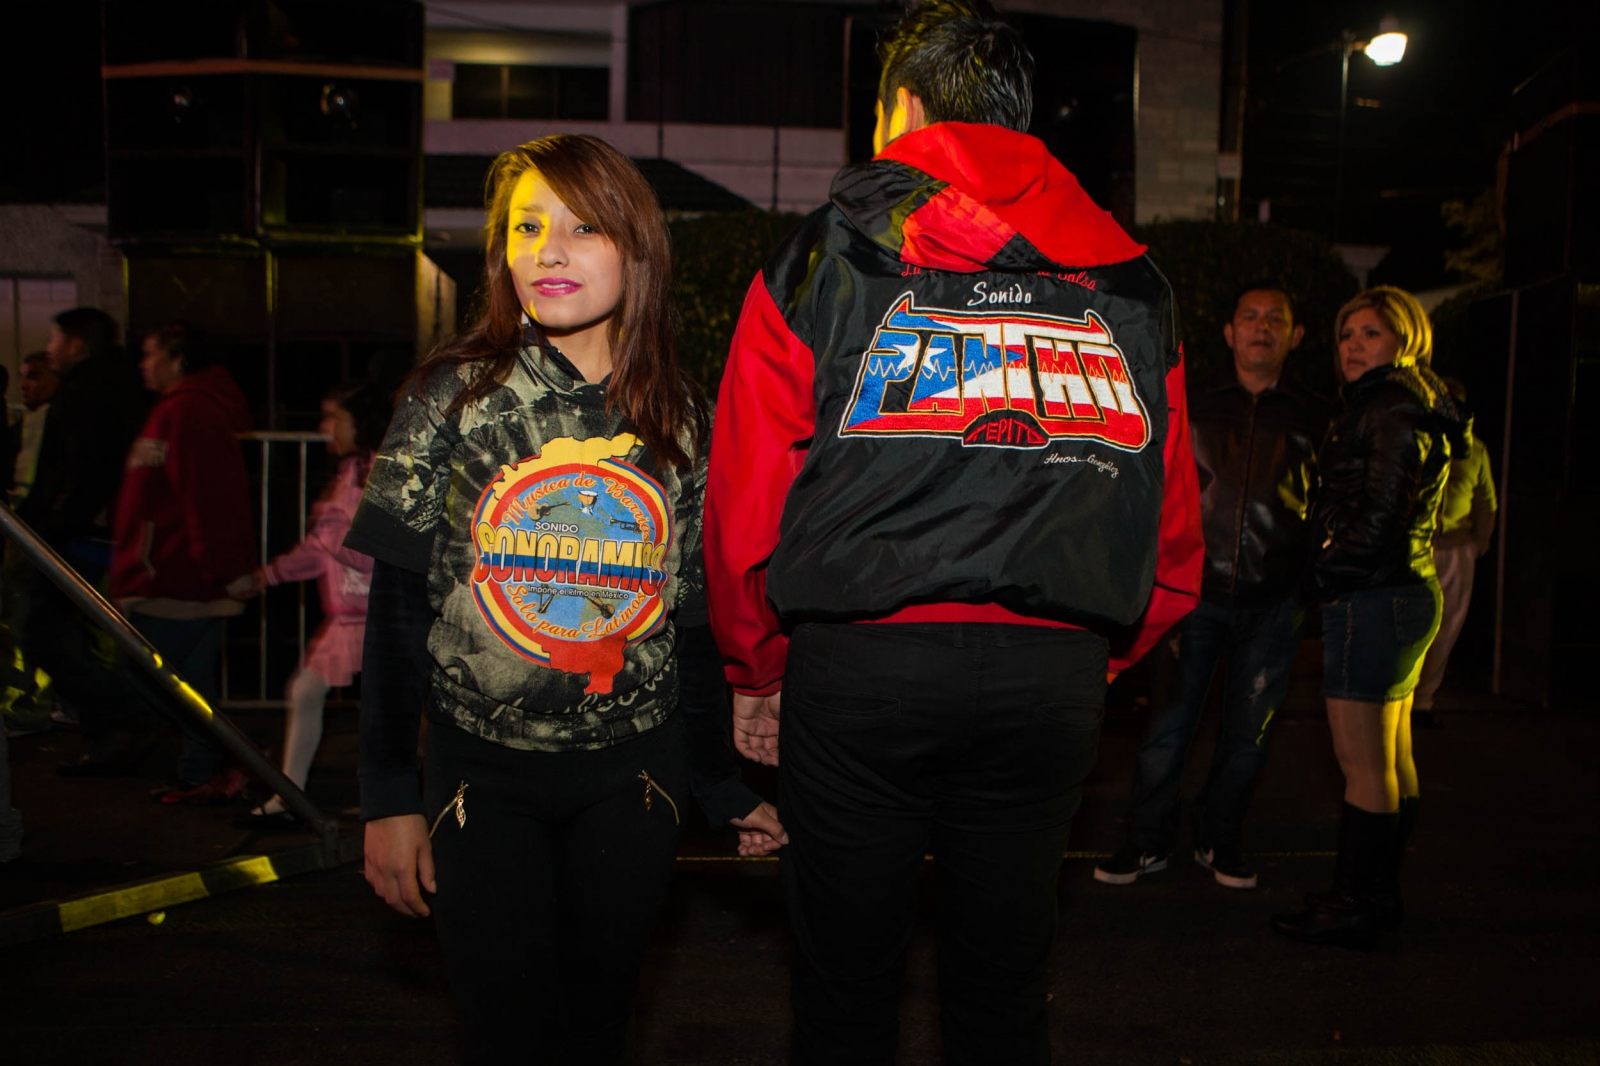 ·Couple wearing jackets with the logo of two of the most famous sonideros in Mexico City and who were playing that same night, Sonido Pancho from Tepito and Sonido Sonoramico from Peñon de los Baños, in the Bosques de Aragon neighborhood anniversary which lasts for two nights. Aragón, Mexico City. February, 2015 // · Pareja vistiendo chamarras de dos de los sonideros más populares en la Ciudad de México, ambos presentes en la tocada de esa noche, en el aniversario del barrio Bosques de Aragon, Sonido Pancho de Tepito y Sonido Sonoramico del Peñon de los Baños. Aragón, Mexico D.F. Febrero, 2015